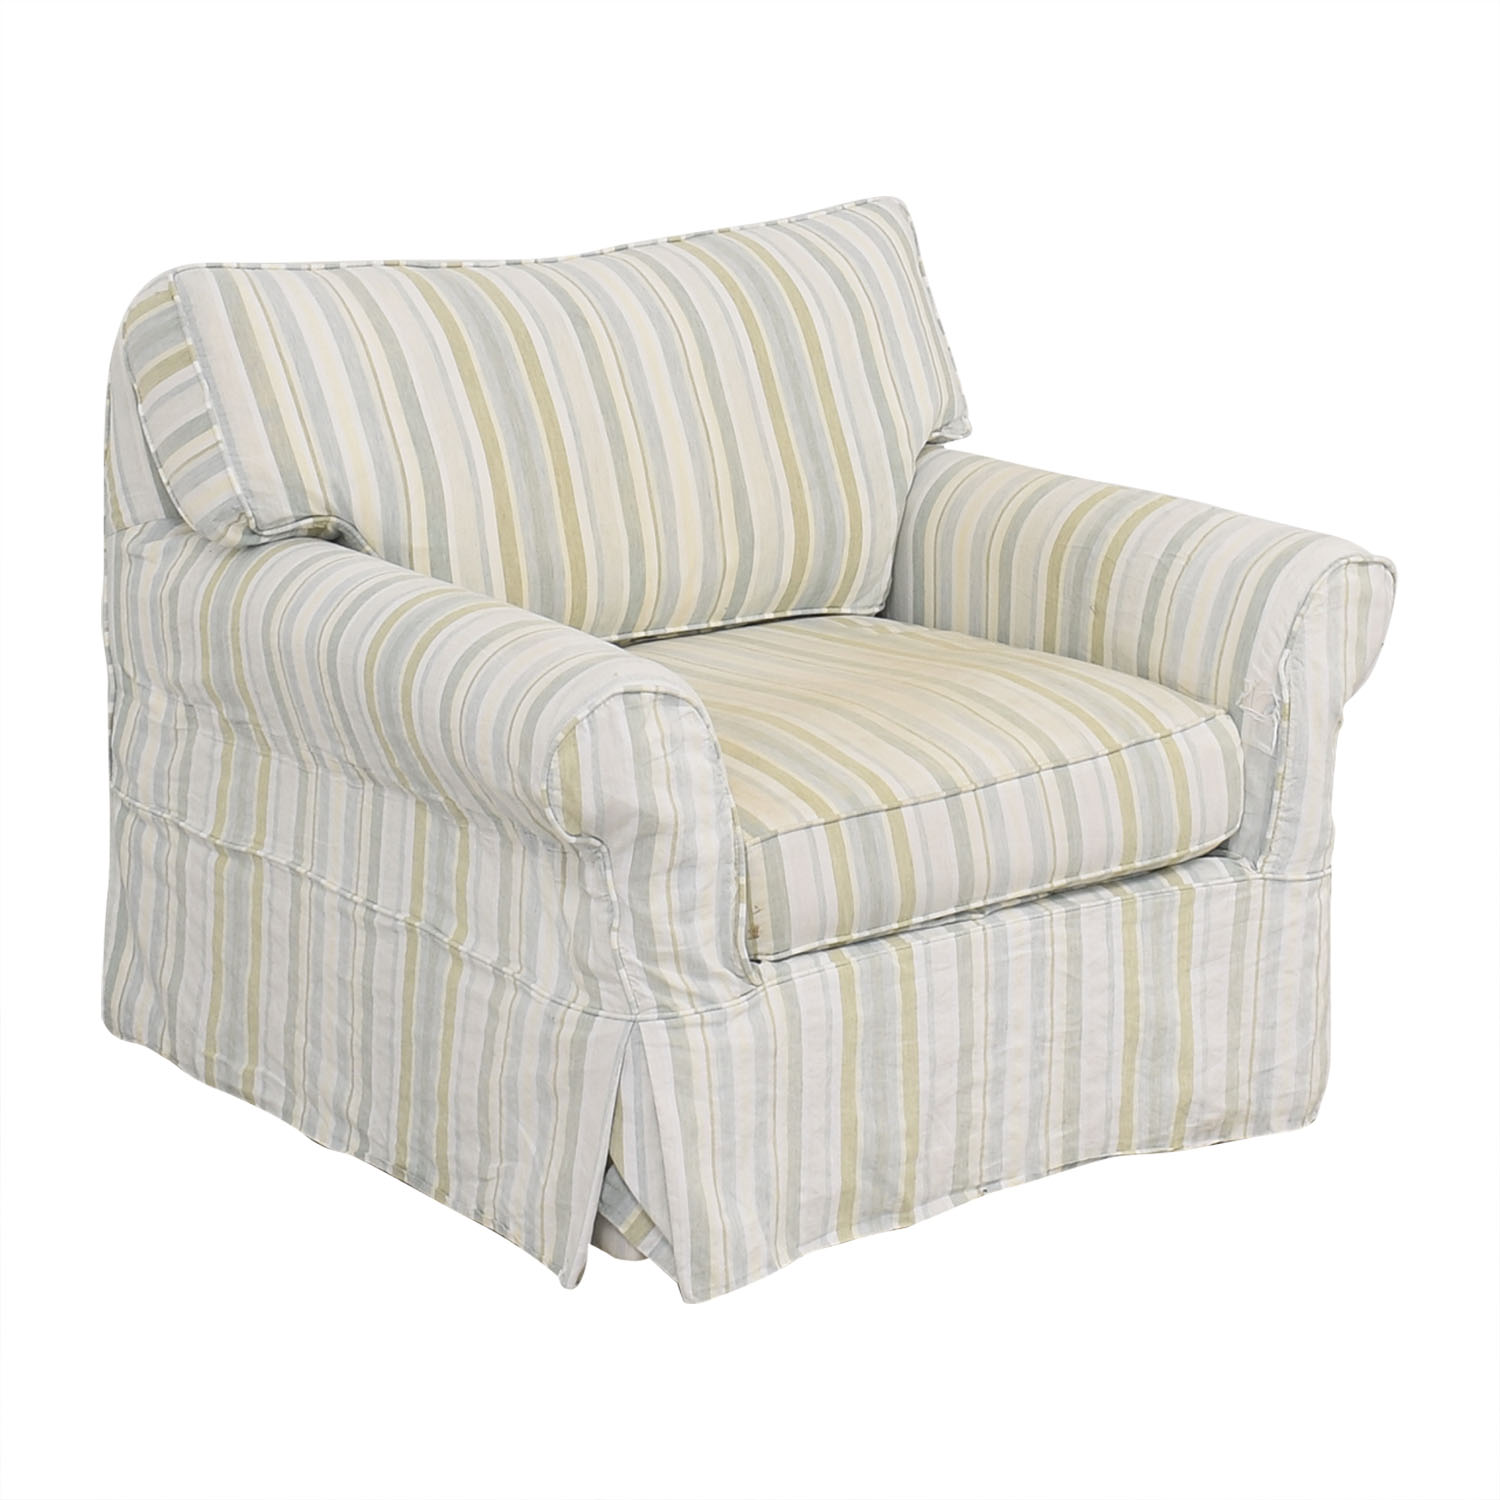 buy Crate & Barrel Crate & Barrel Slipcovered Accent Chair online